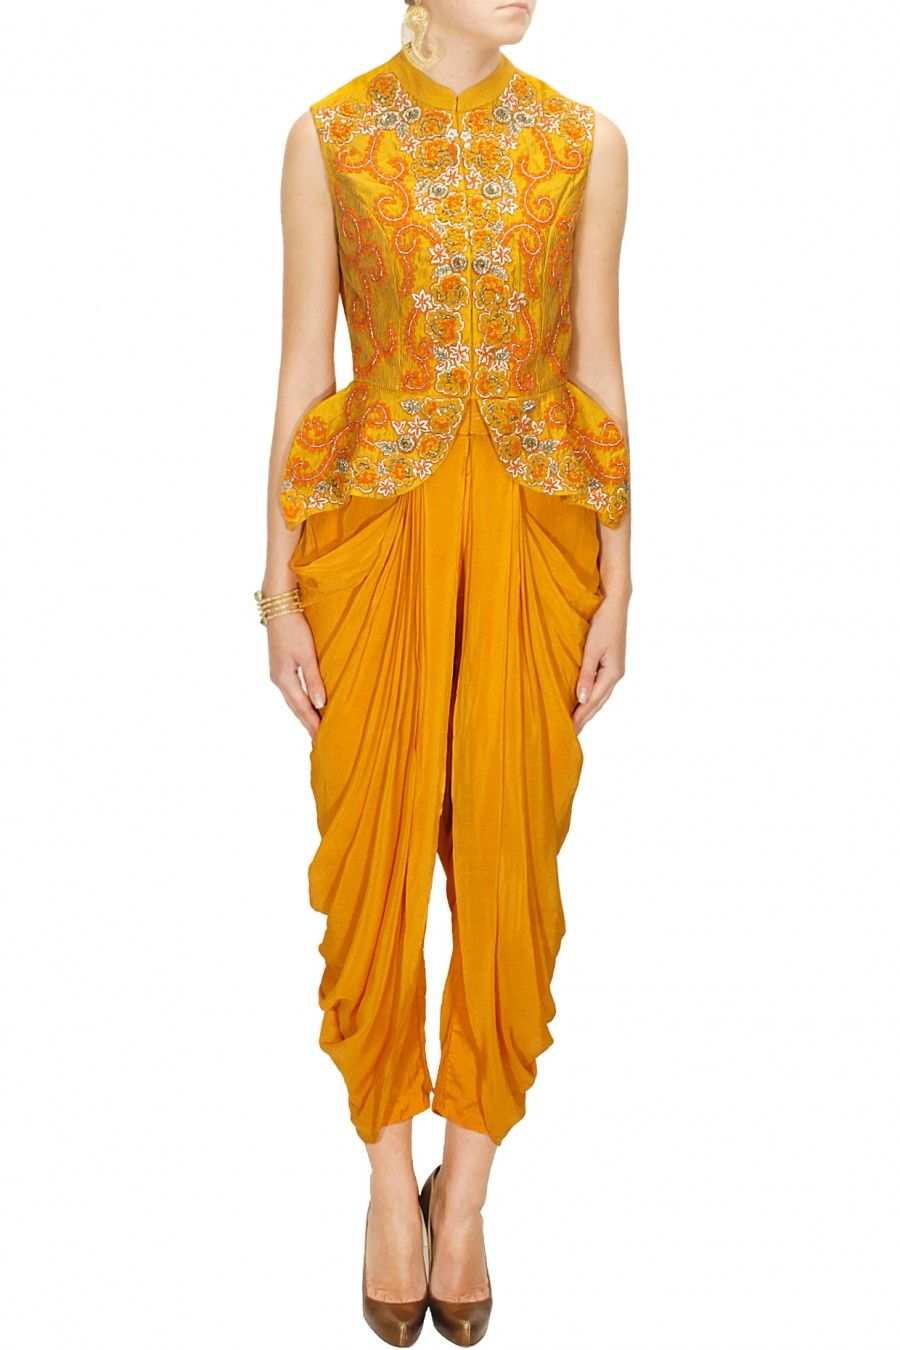 fff1ddf136 Mustard floral embroidered peplum jacket and dhoti pants available only at  Pernia s Pop-Up Shop.